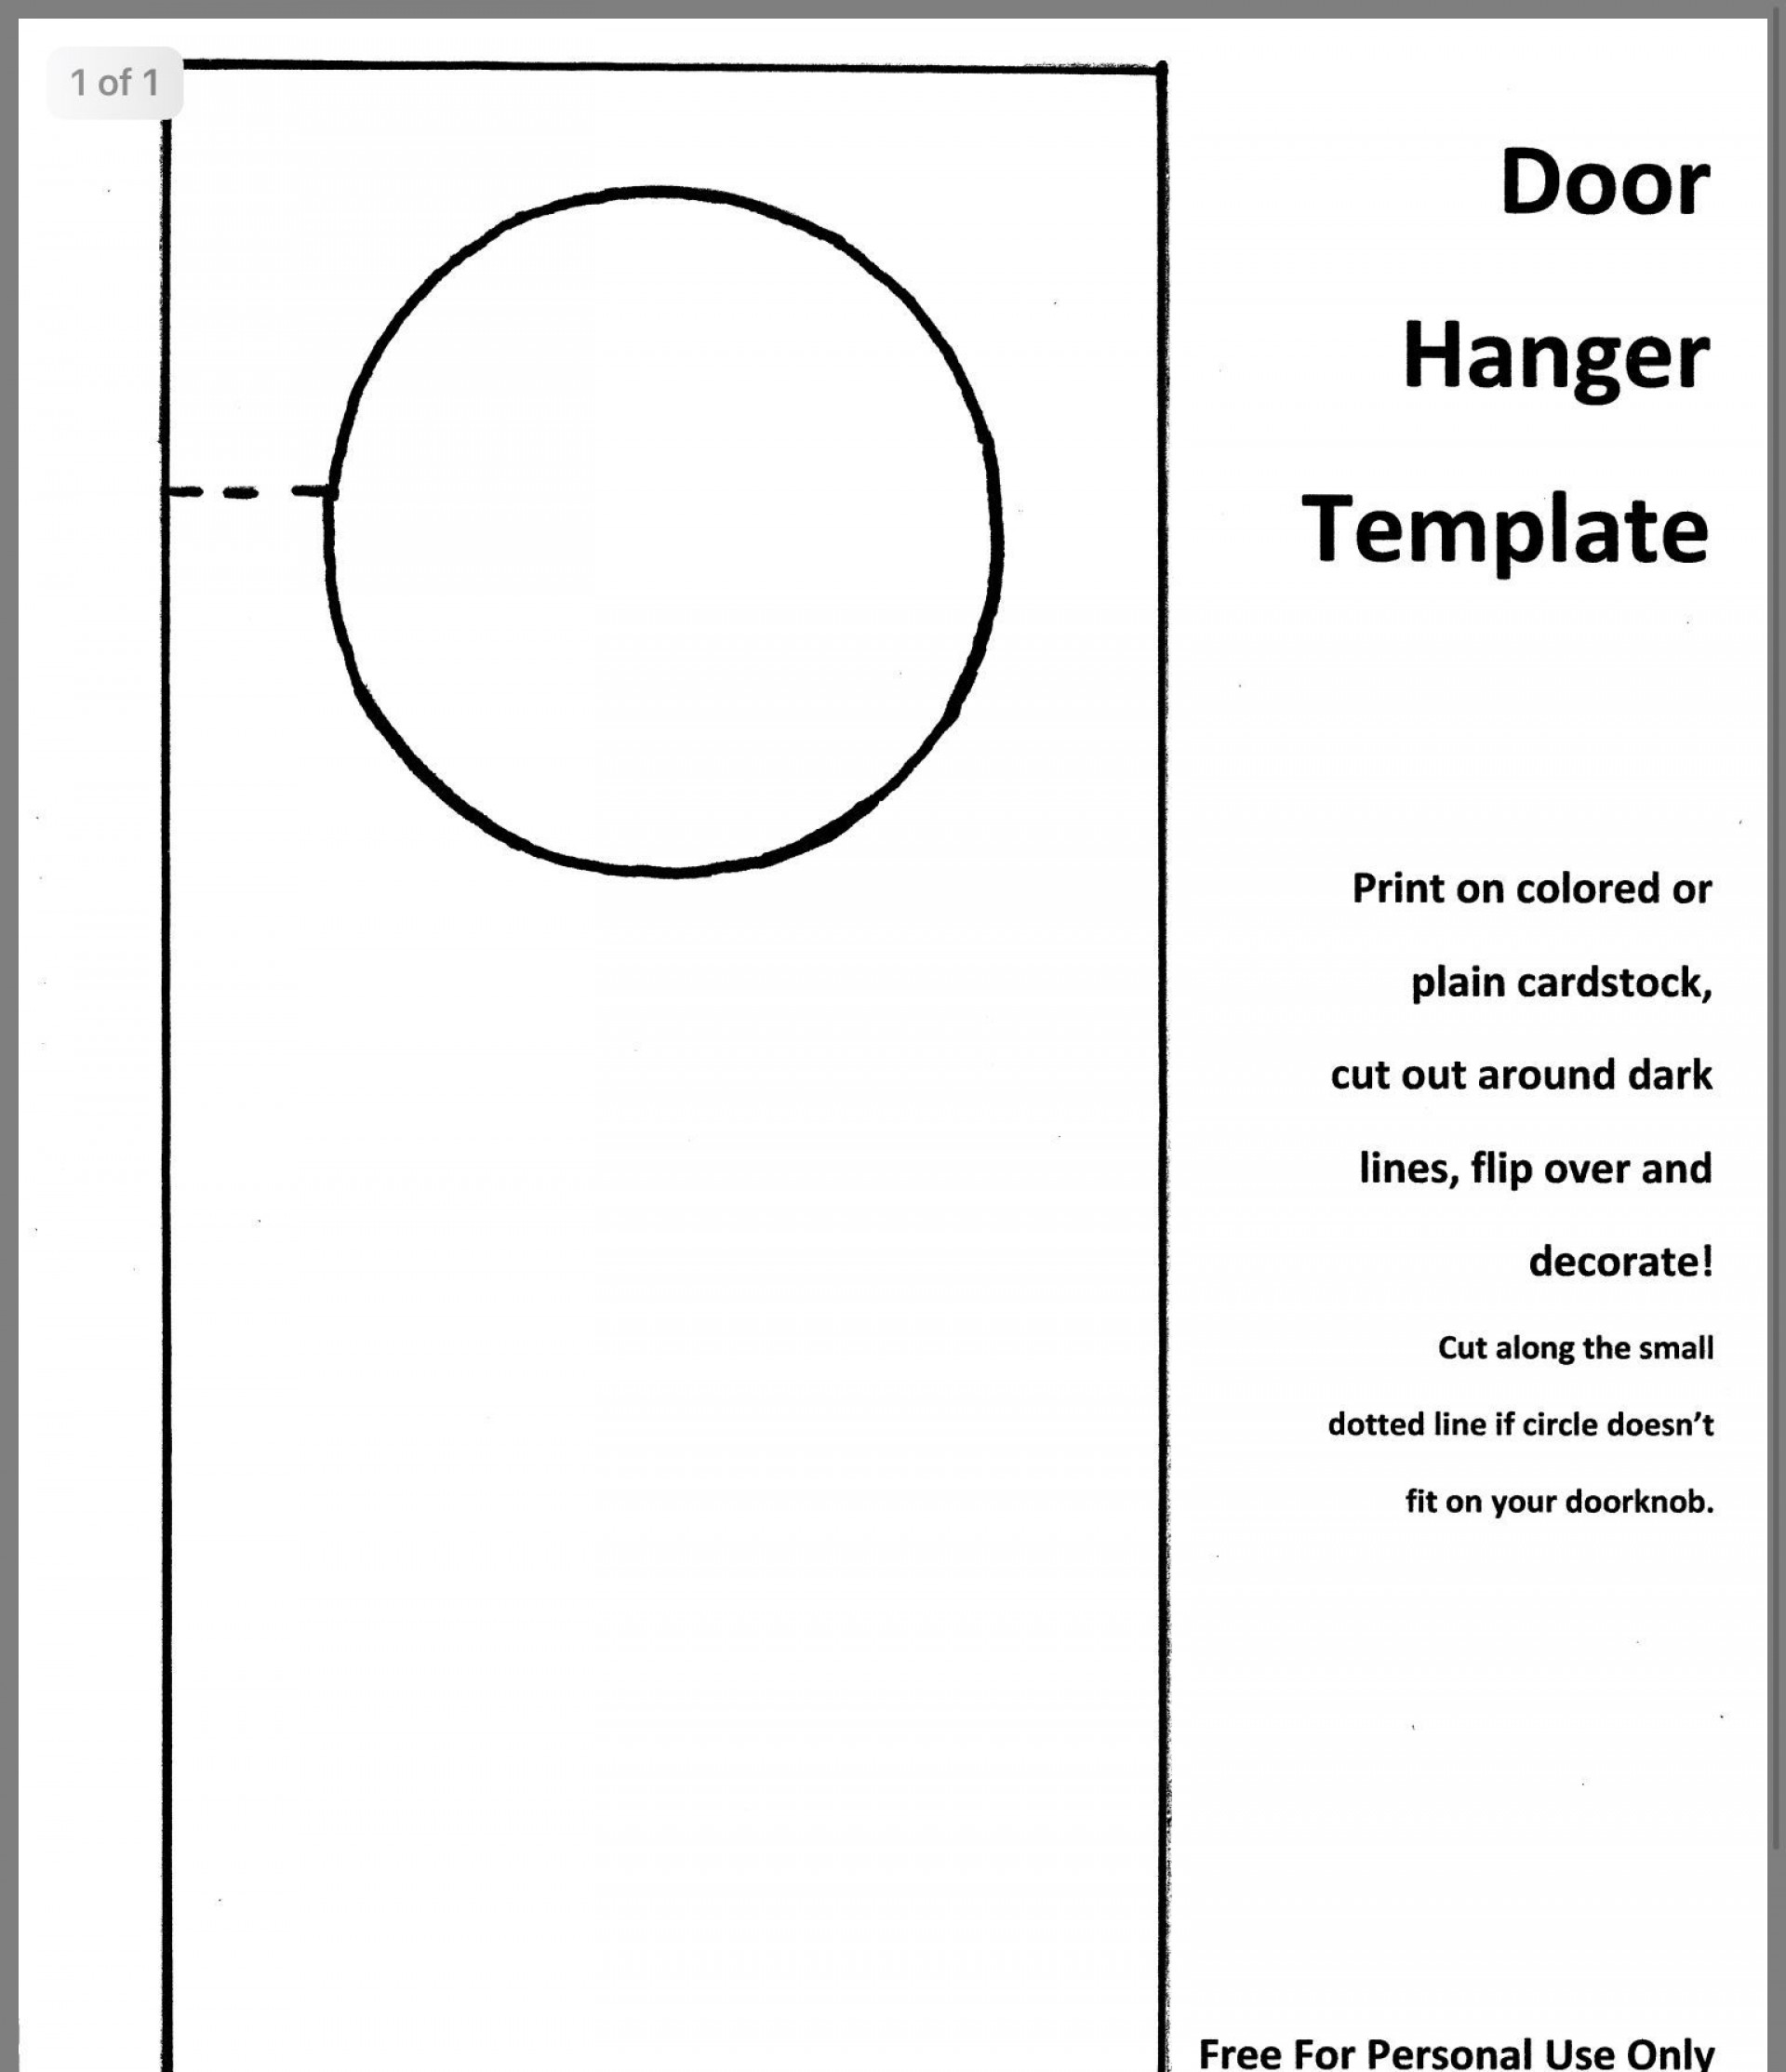 001 Magnificent Door Hanger Template Word Highest Clarity  Download Free Blank For Microsoft1920